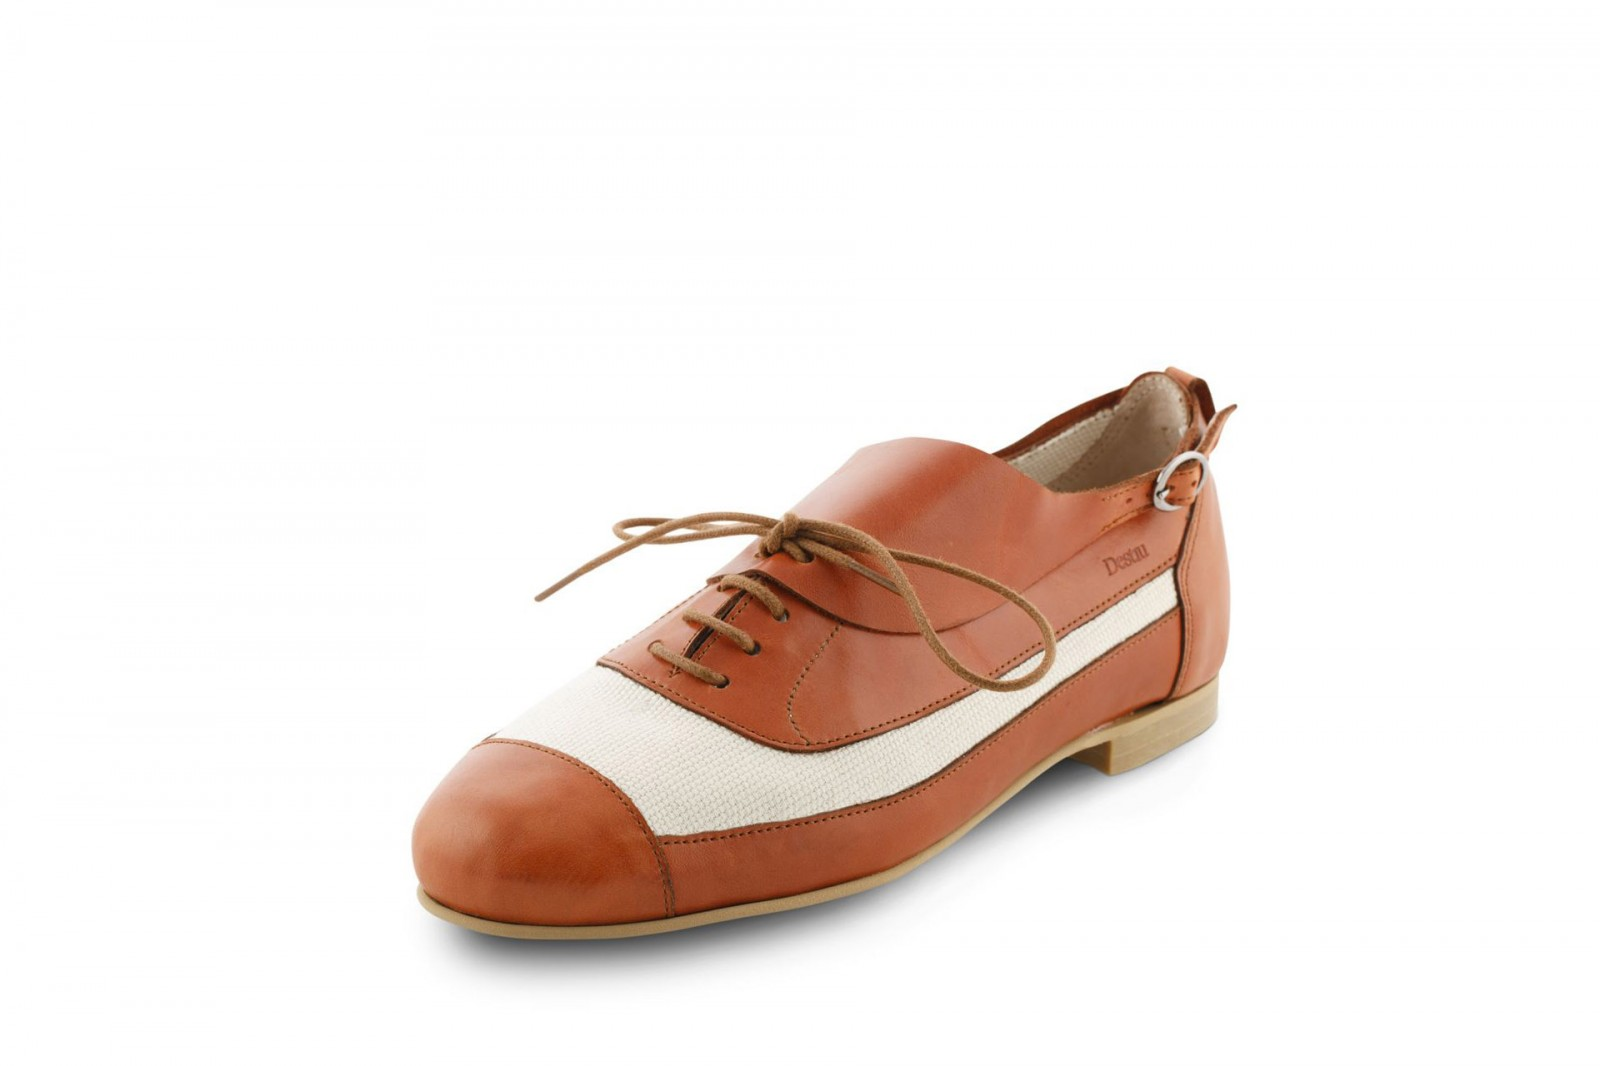 Mallorca porquera shoe for women